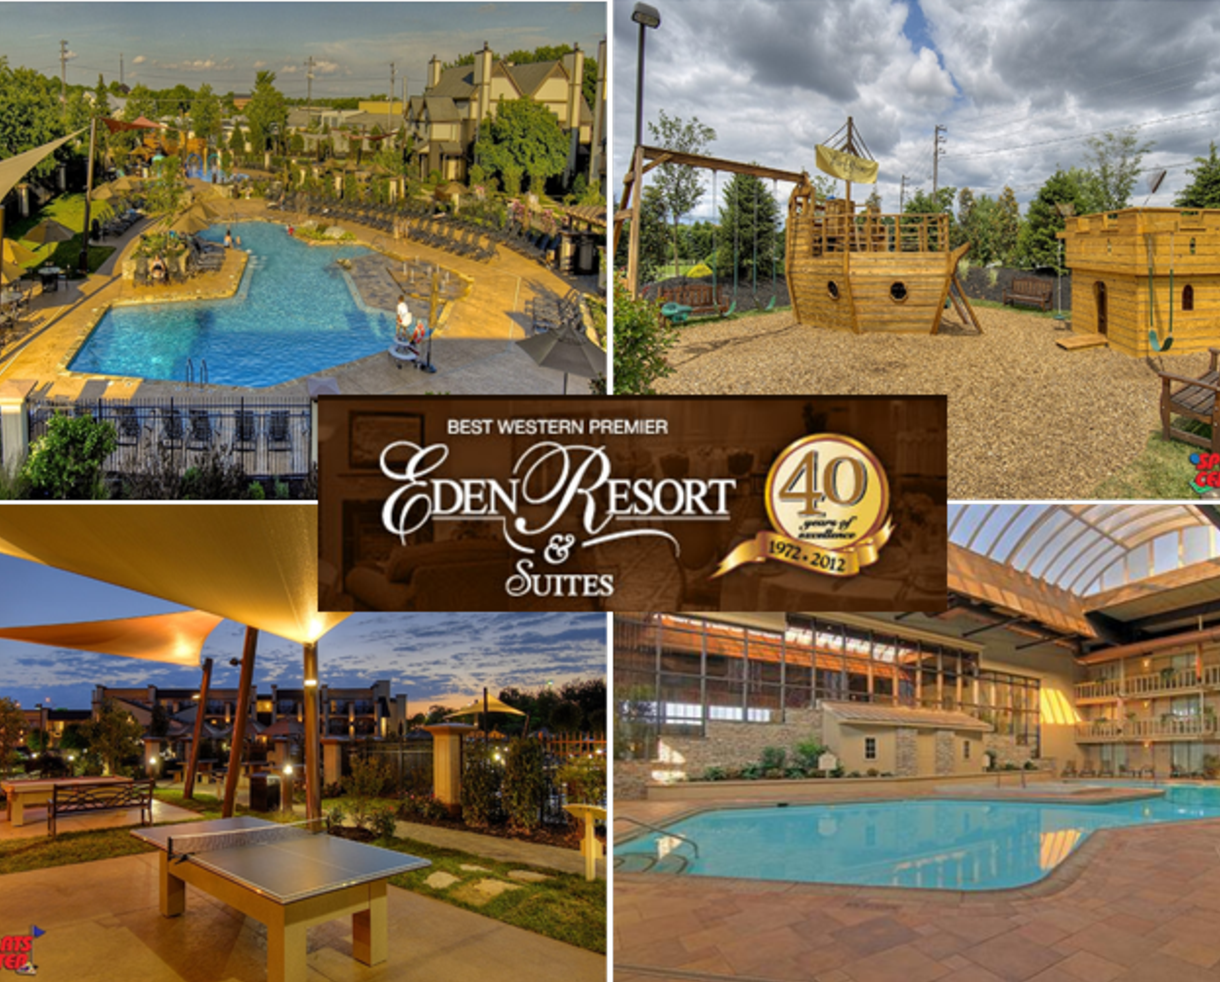 $99 for Overnight Stay at Eden Resort in Lancaster + $25 Food Credit + KIDS EAT FREE!! (47% off)